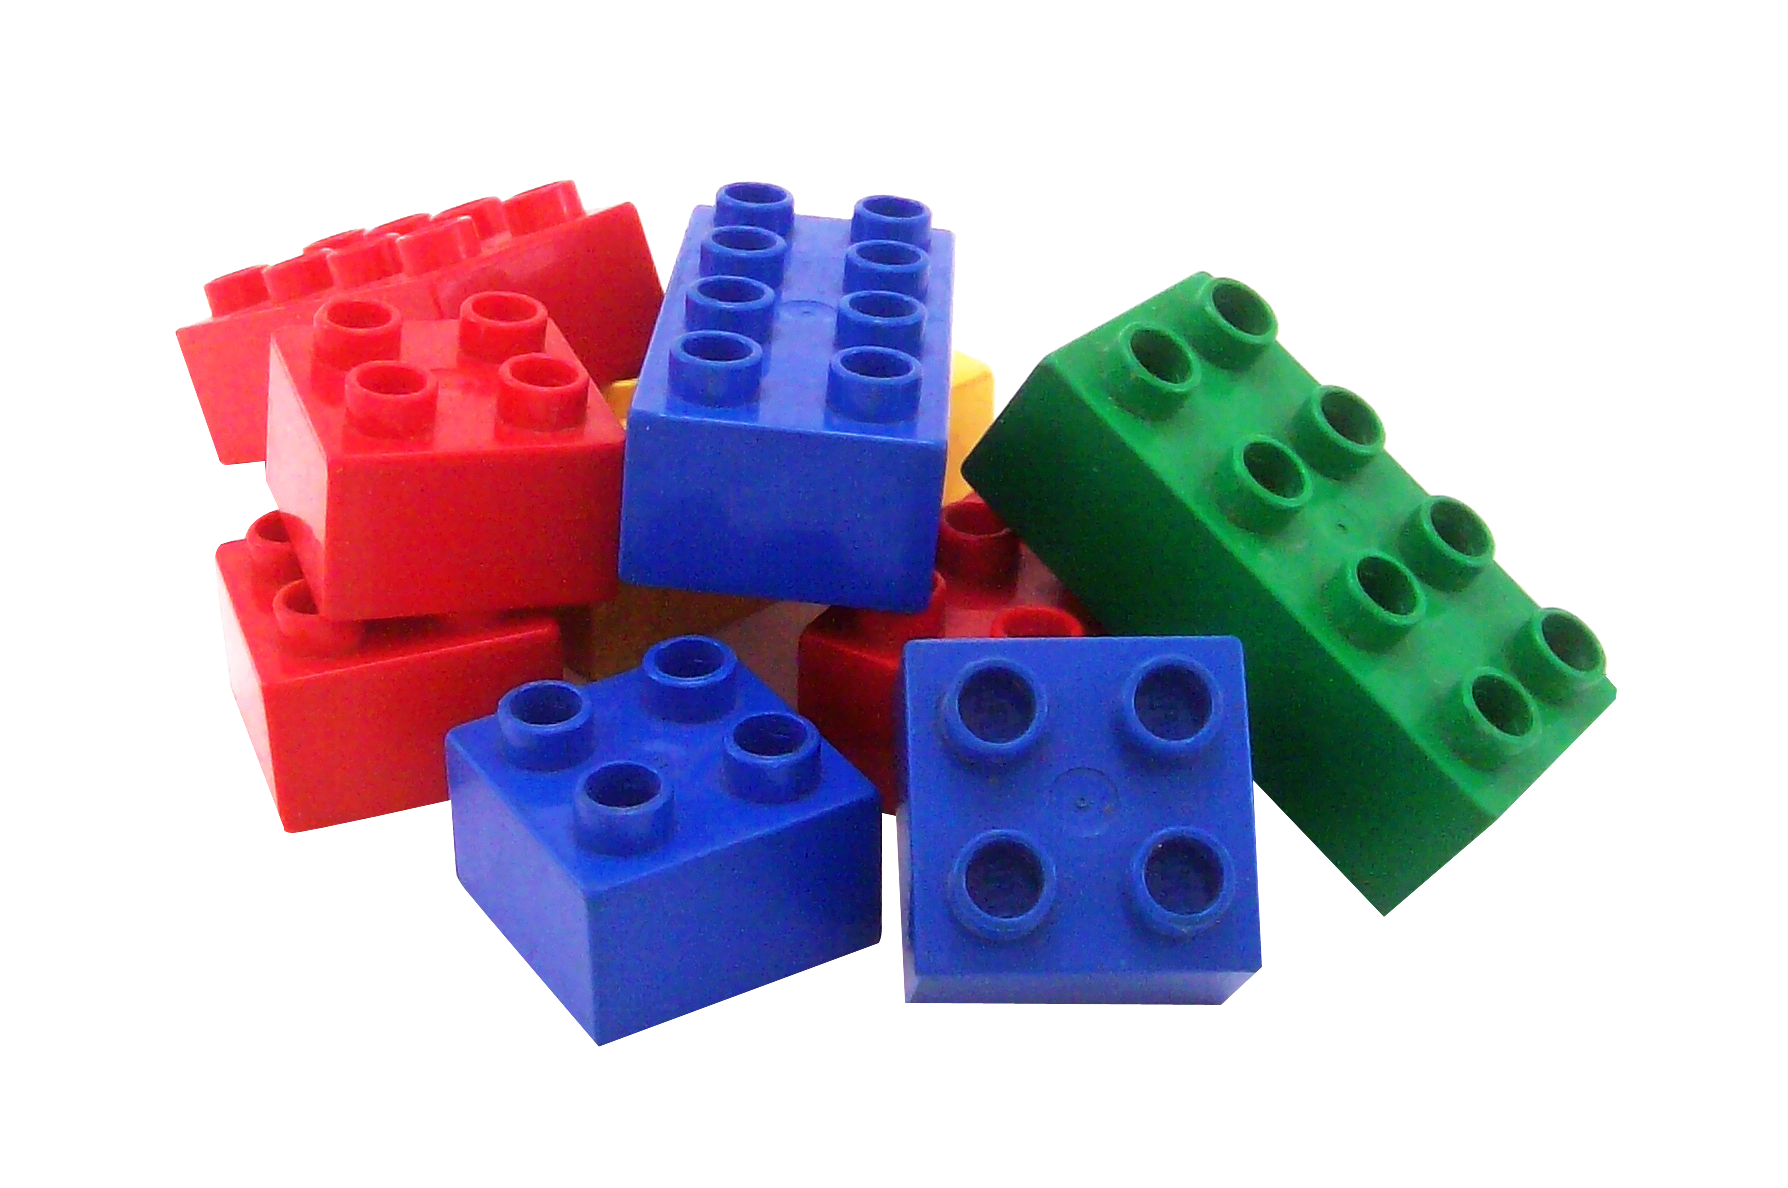 Lego Brick, Blue, Red, Green Png image #46615